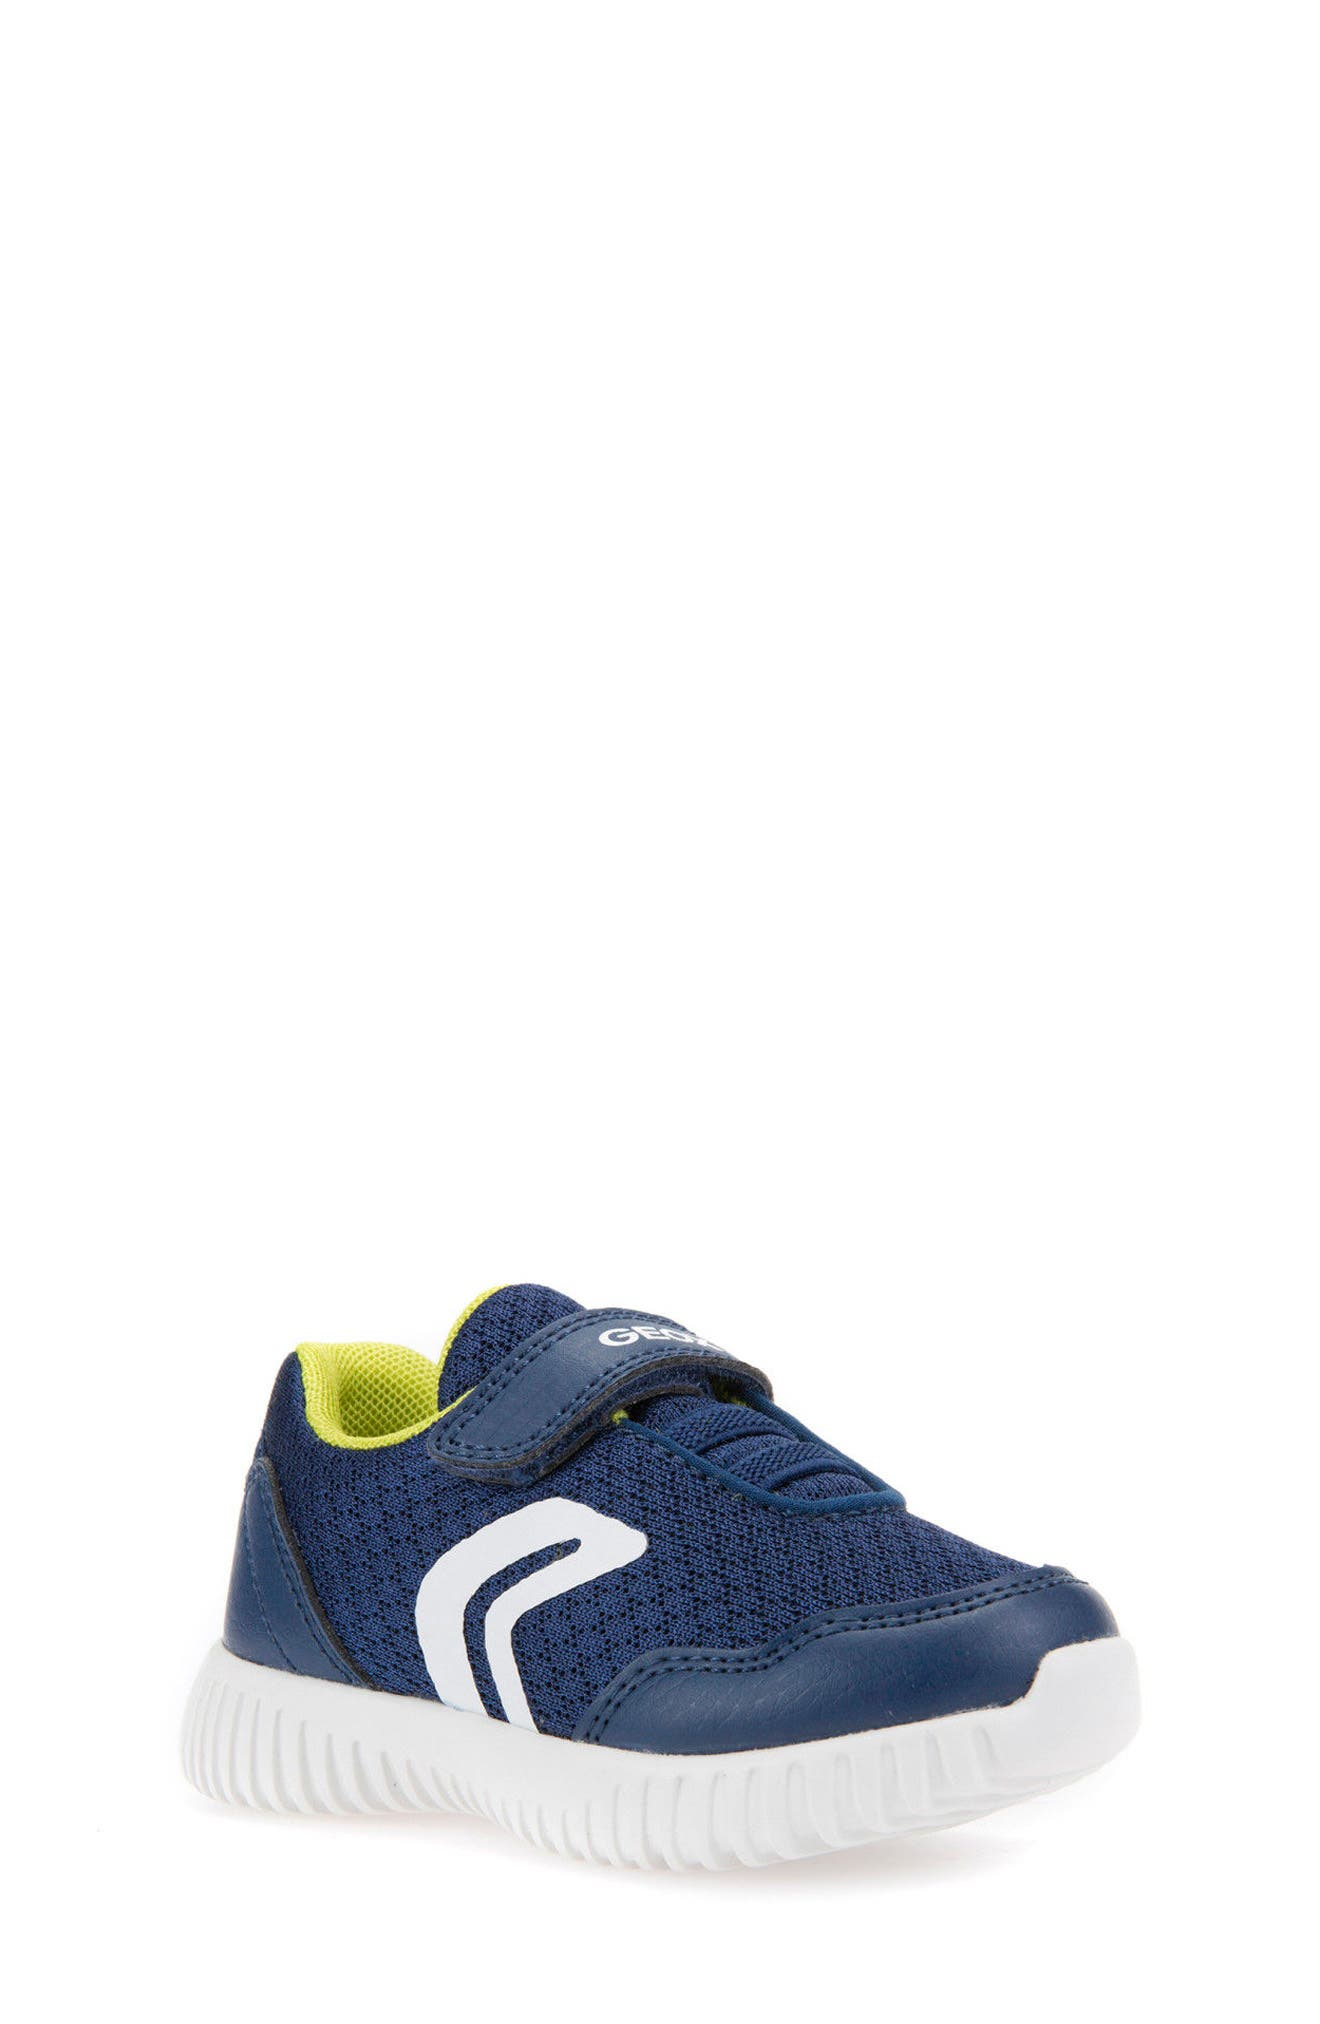 Waviness Sneaker,                         Main,                         color, NAVY/ LIME